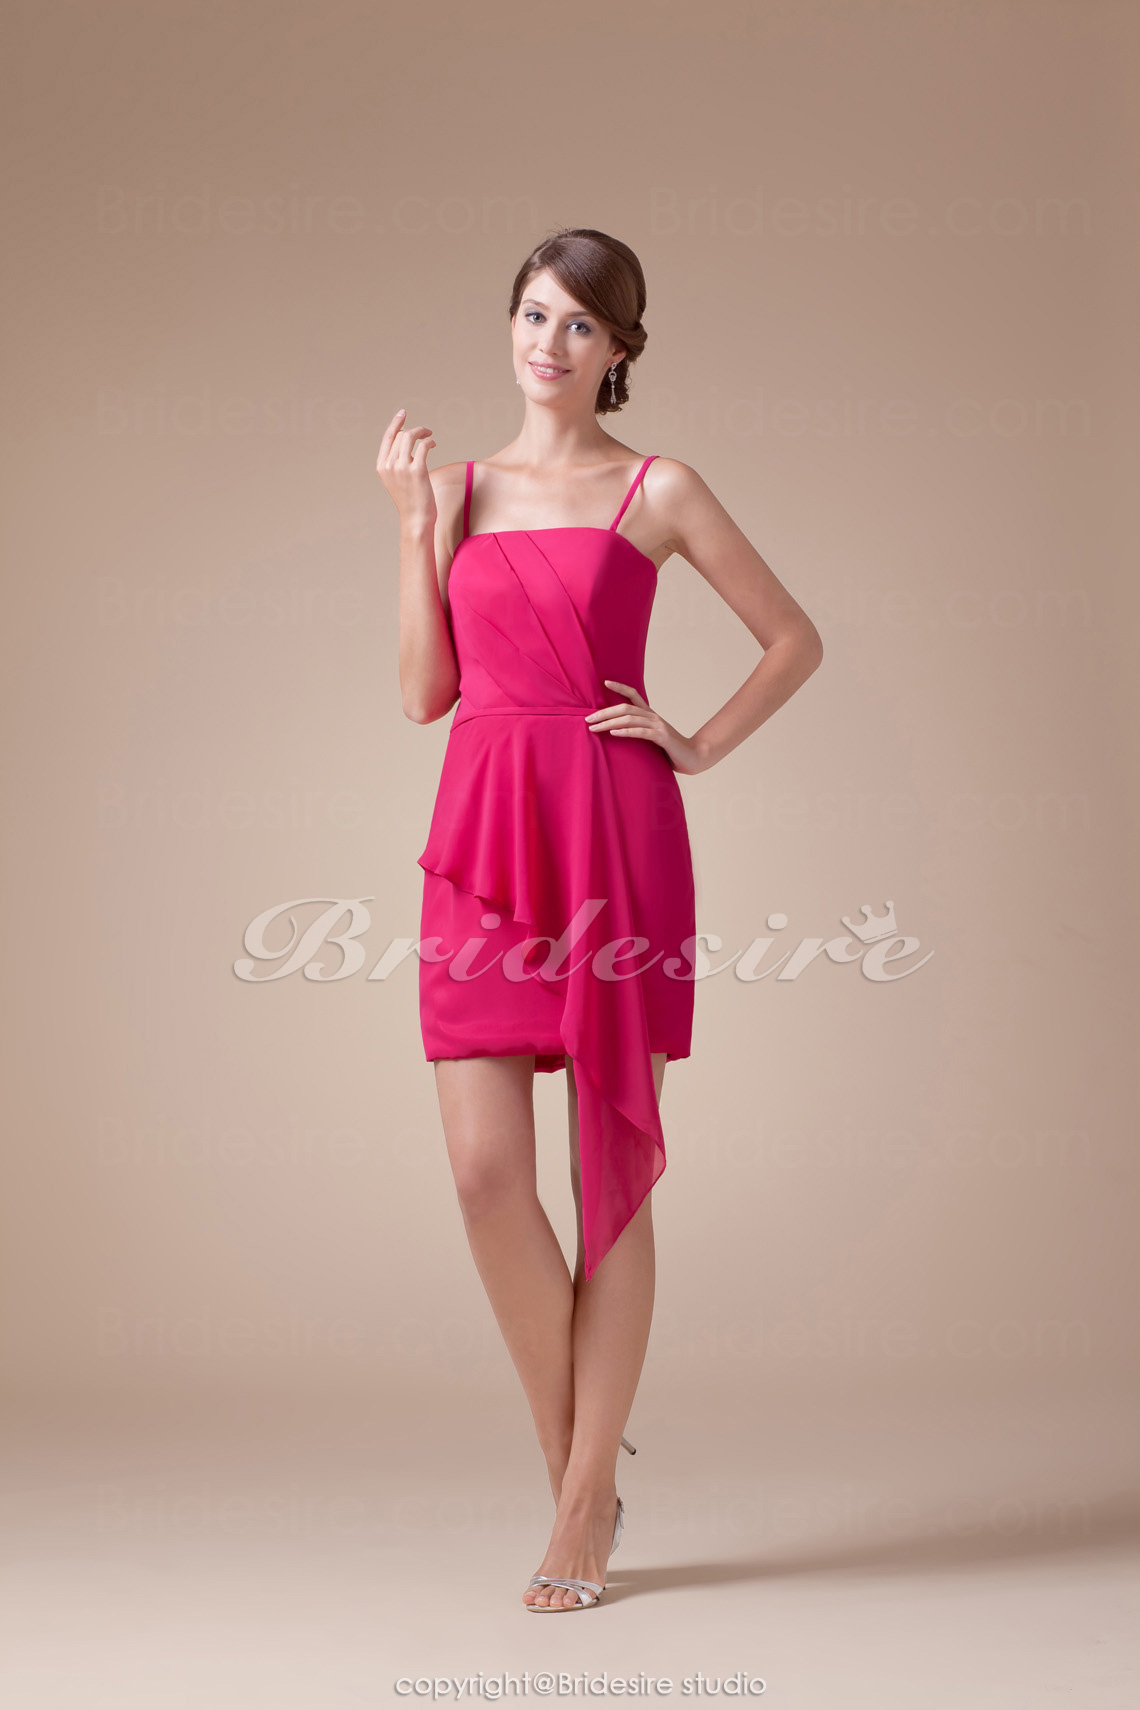 Sheath/Column Spaghetti Straps Short/Mini Sleeveless Chiffon Bridesmaid Dress